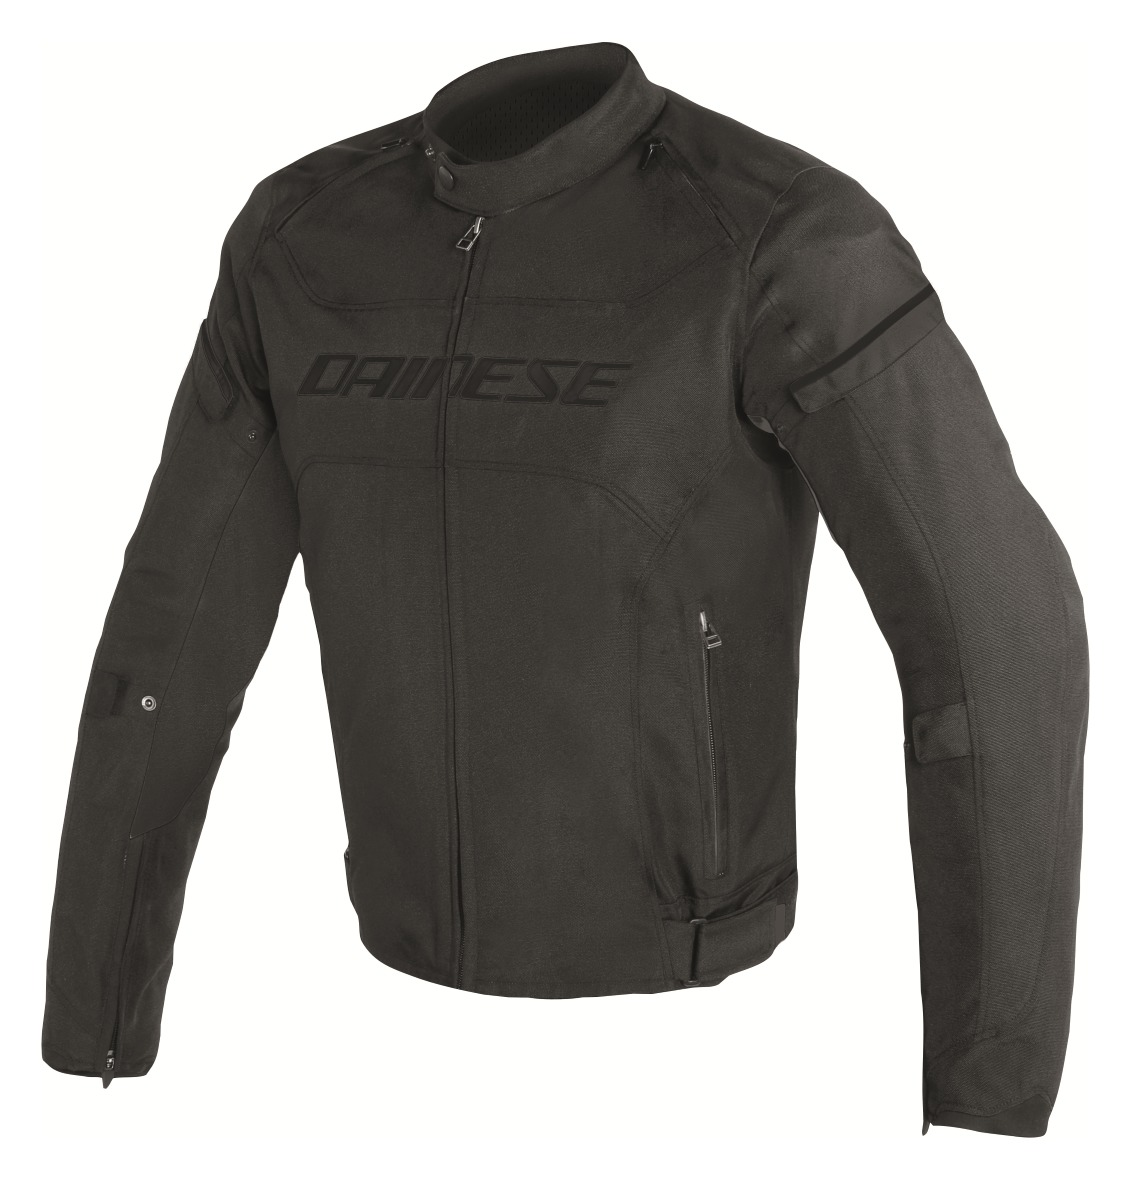 Dainese d frame jacket revzilla for D garage dainese corbeil horaires